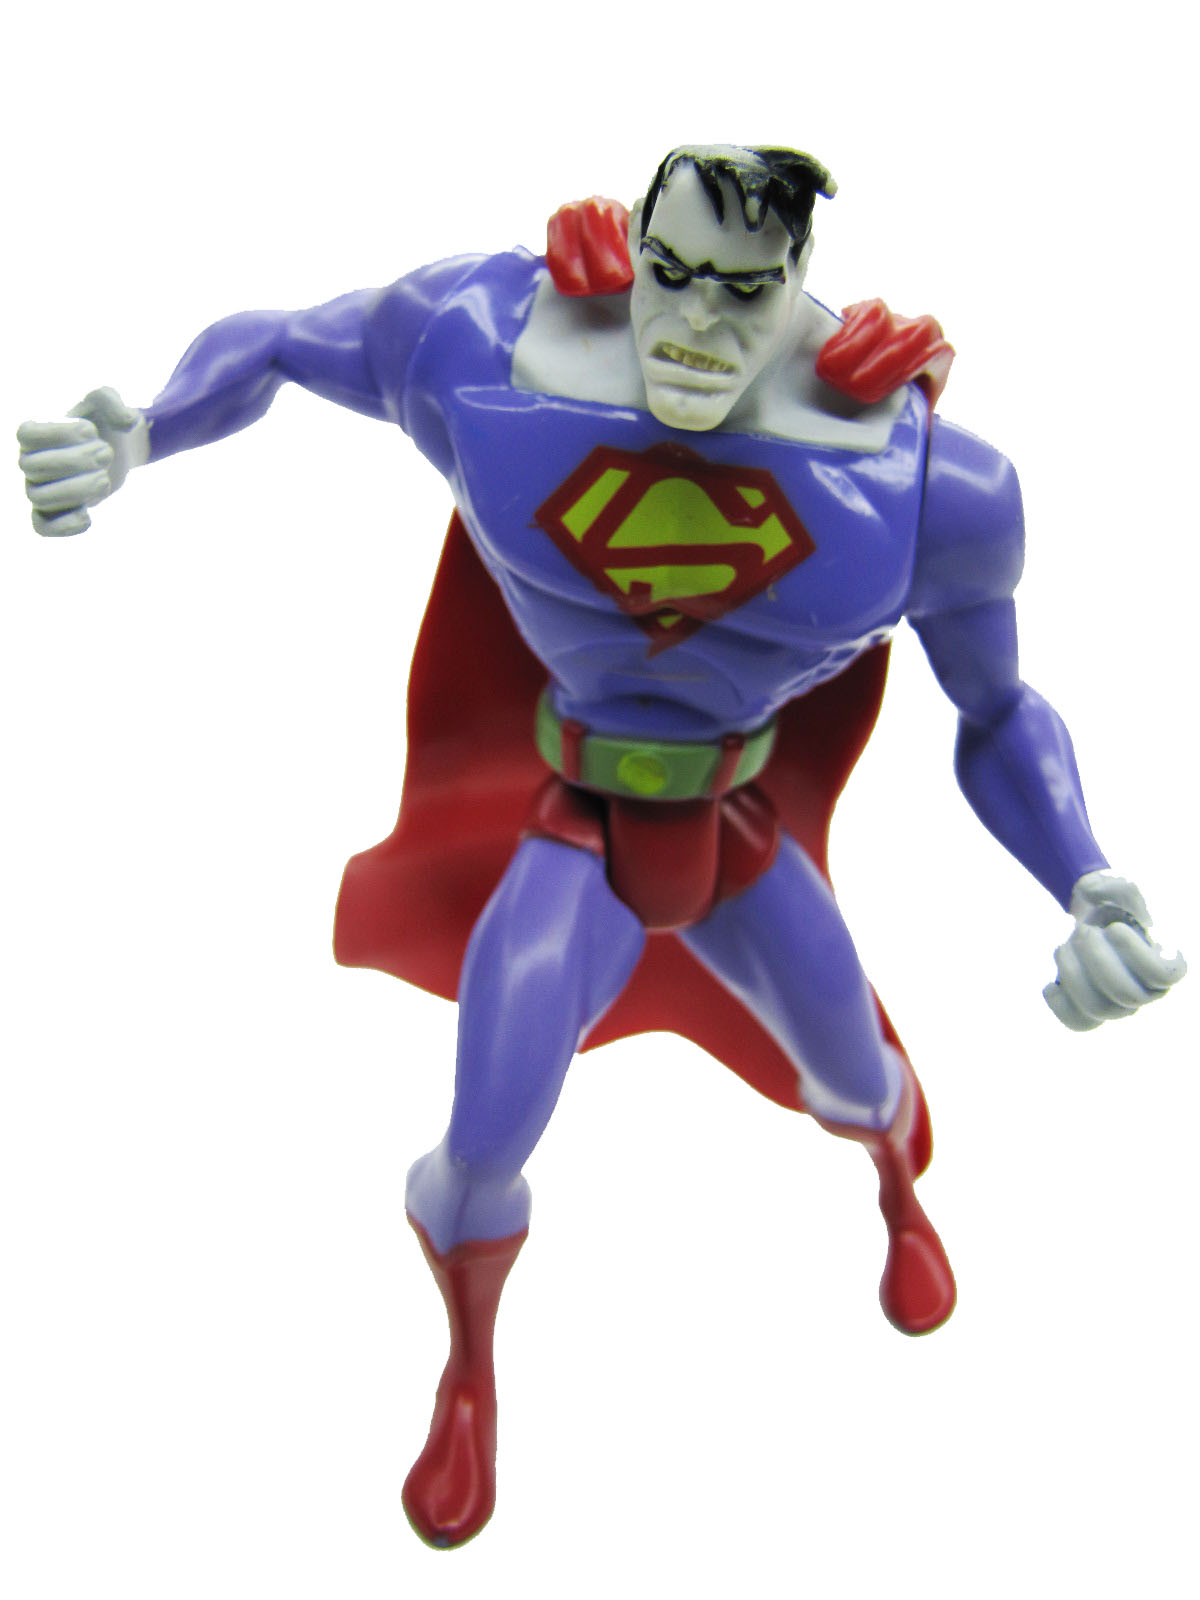 Superman Animated Series Bizzaro Complete